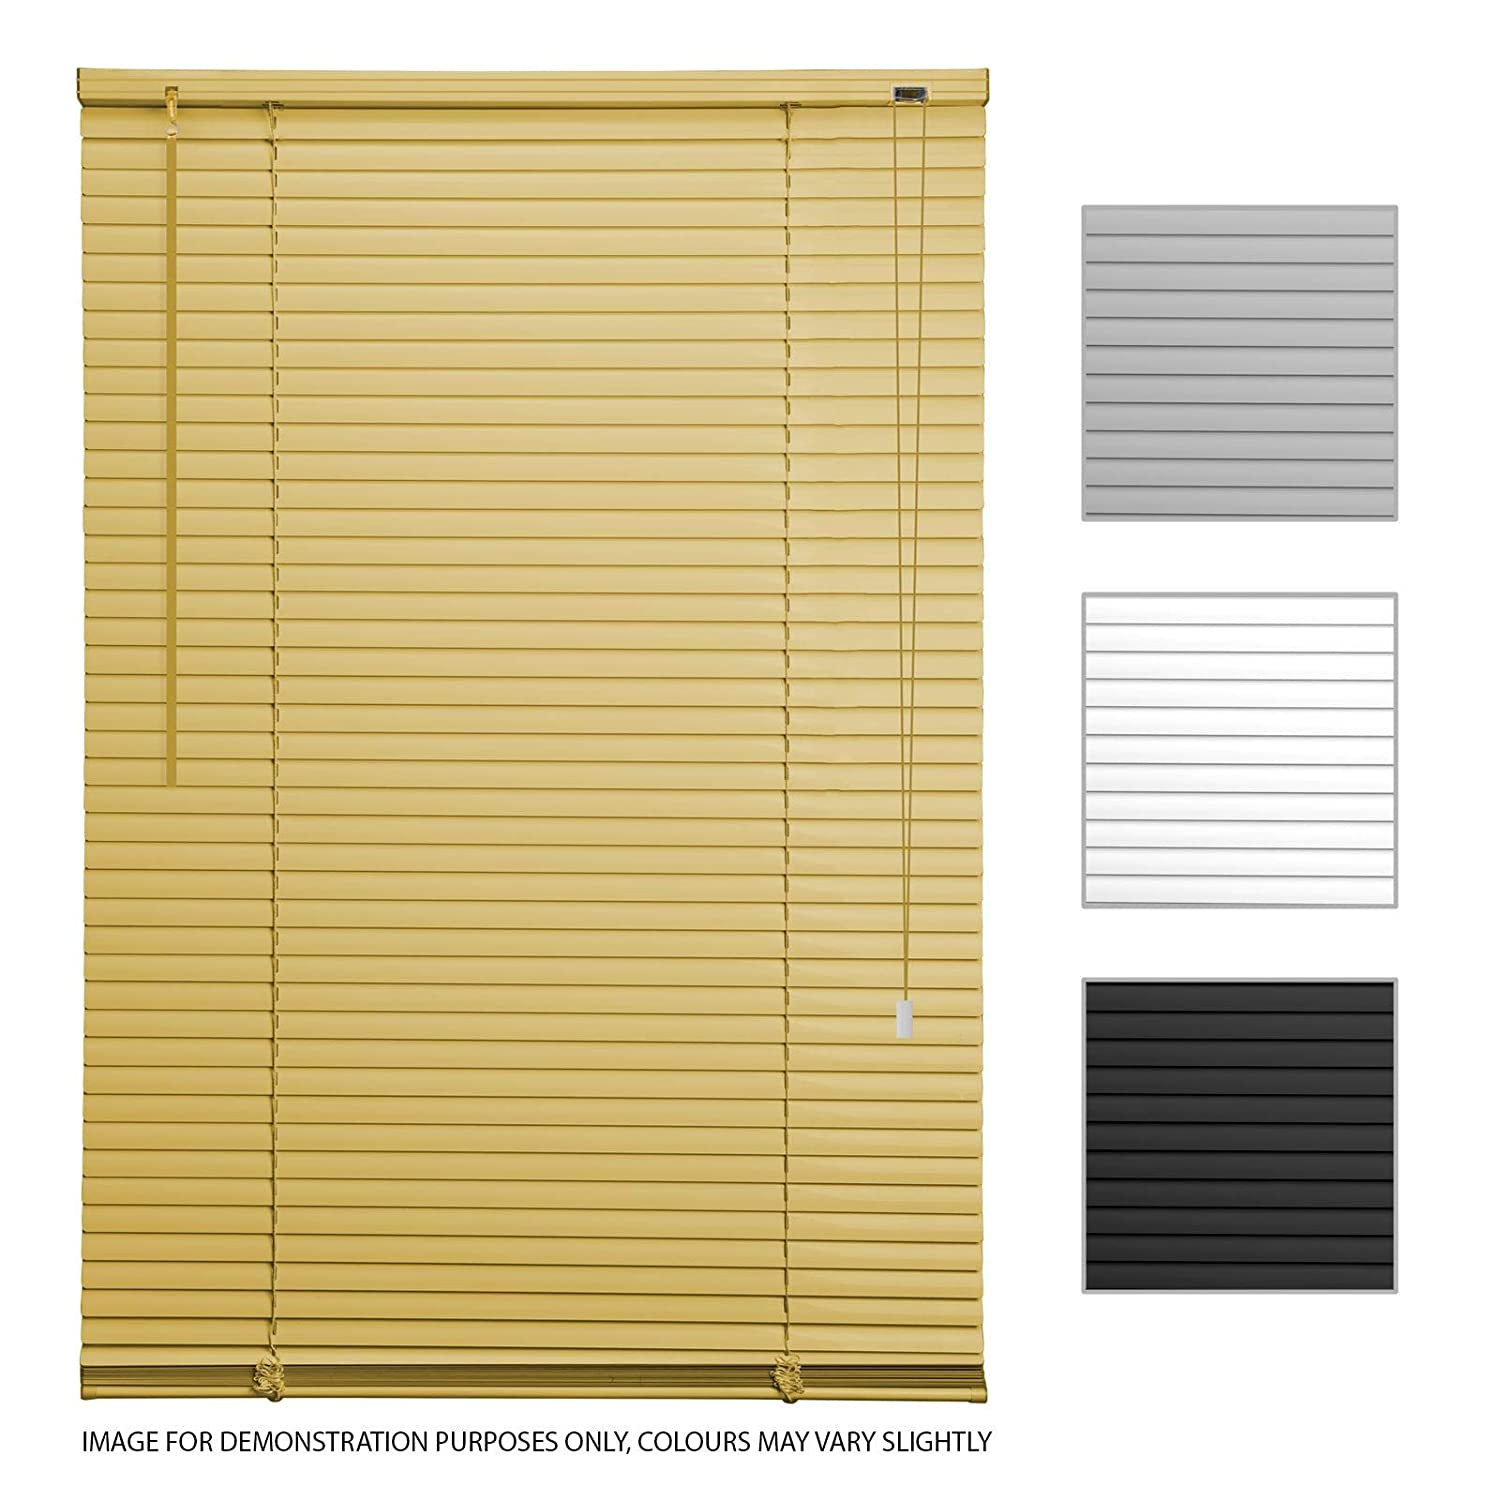 ASAB PVC Venetian Shutter Blinds | Window Mounting Brackets Easily Cut | Home Office Privacy Light Protection | Twist Tilt Open Close Control Wand Pull Cord | 45cm - Grey